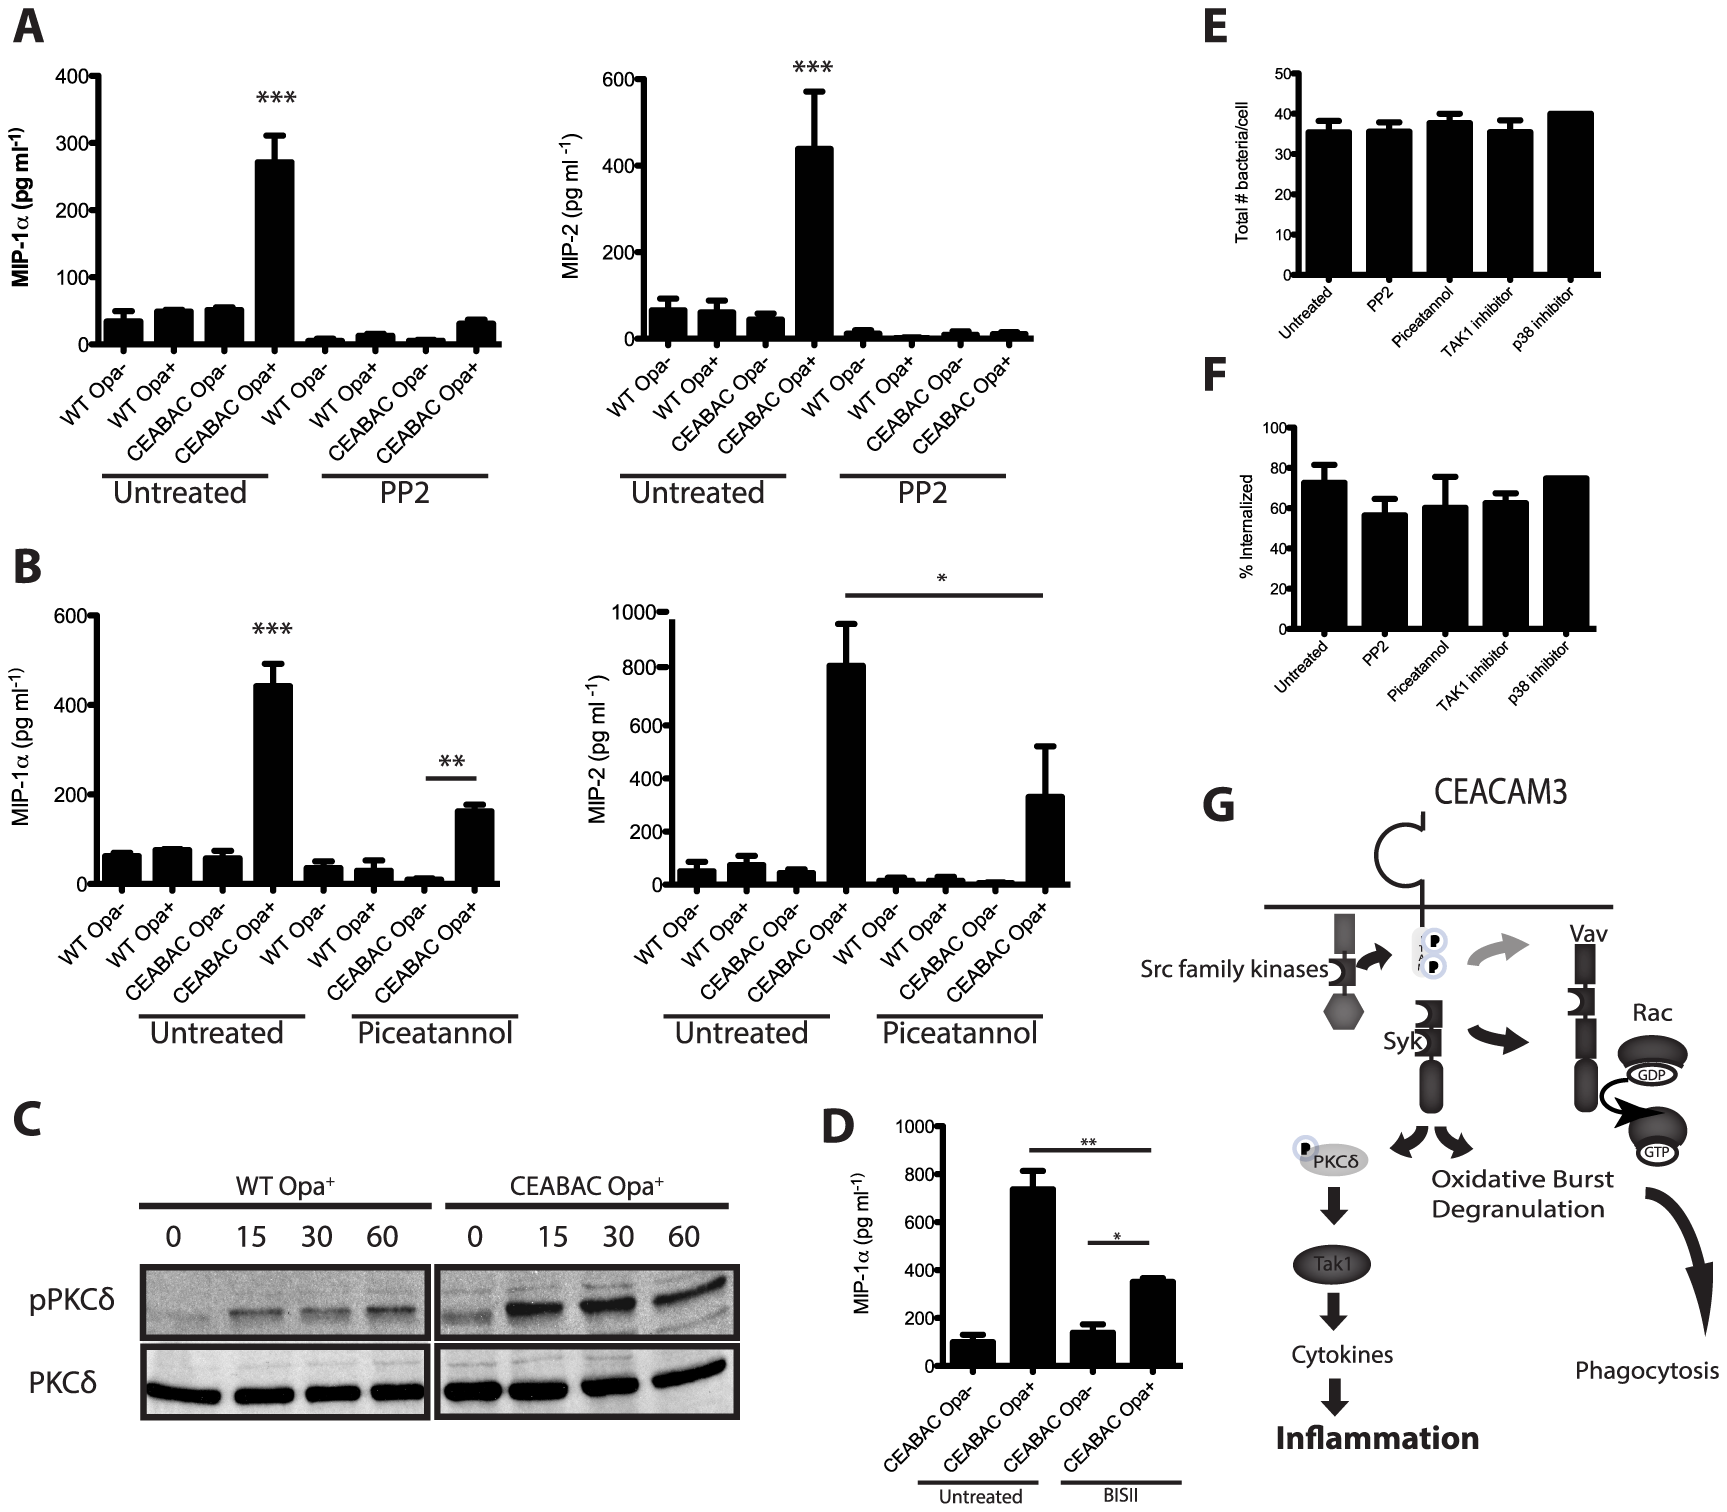 CEACAM3 signaling is required for the PMN cytokine response to <i>N. gonorrhoeae</i>.